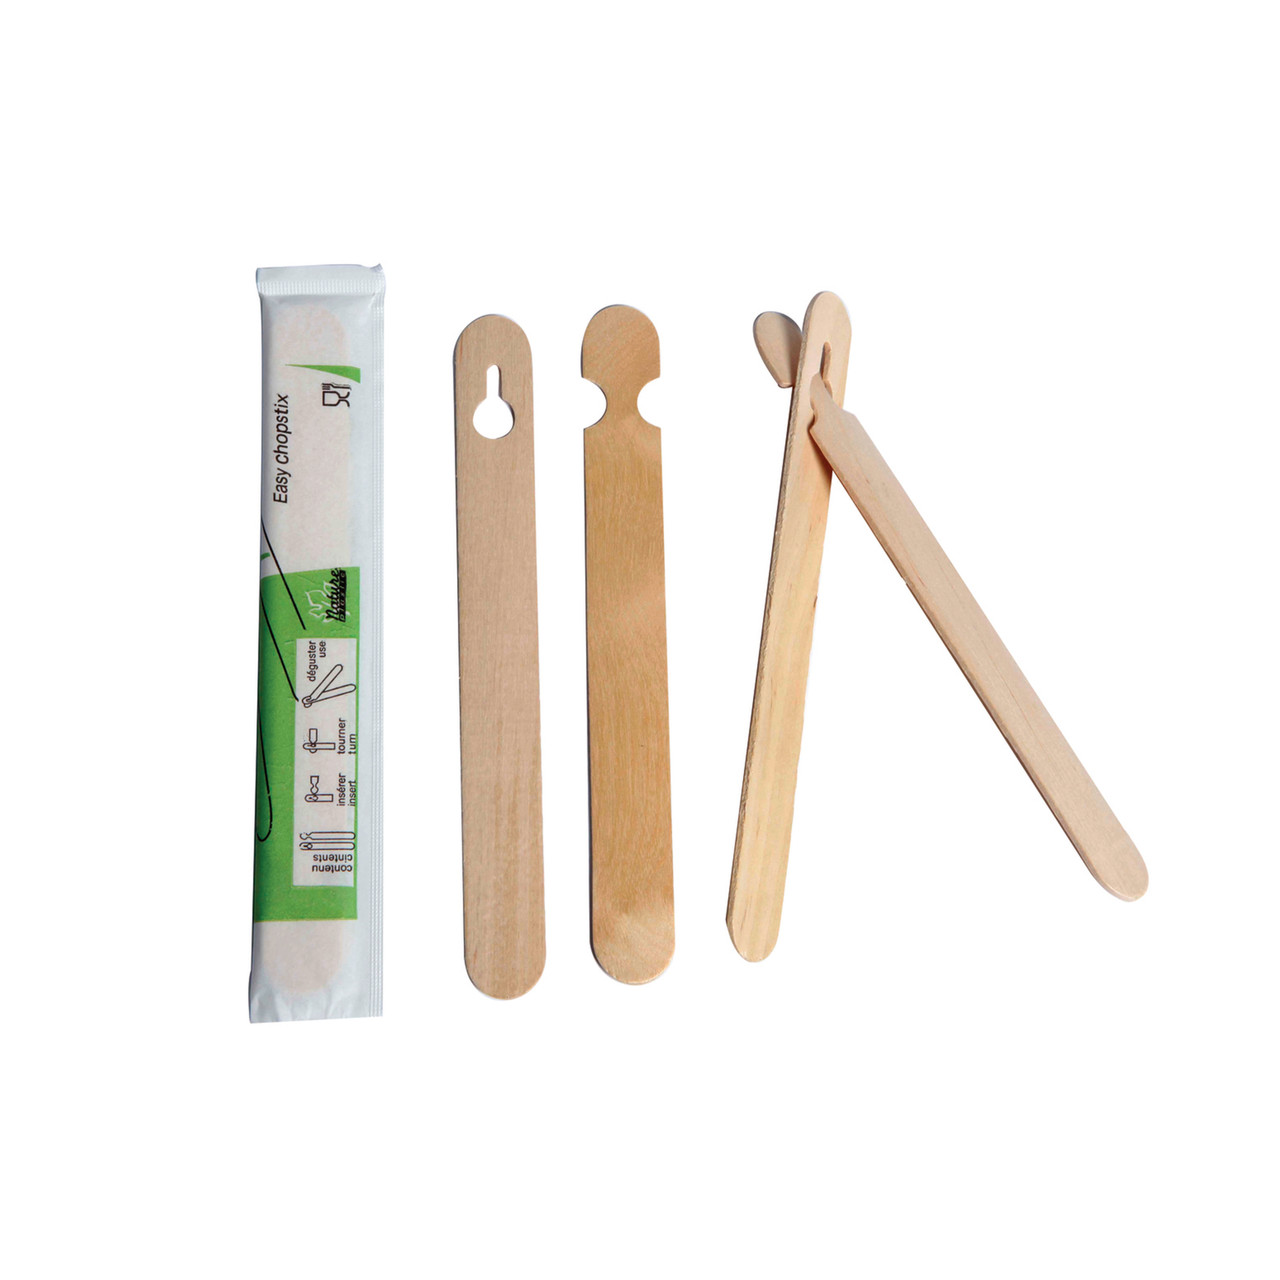 Easy Wooden Chopsticks Wrapped By Pair - L:5.9 x W:.64in